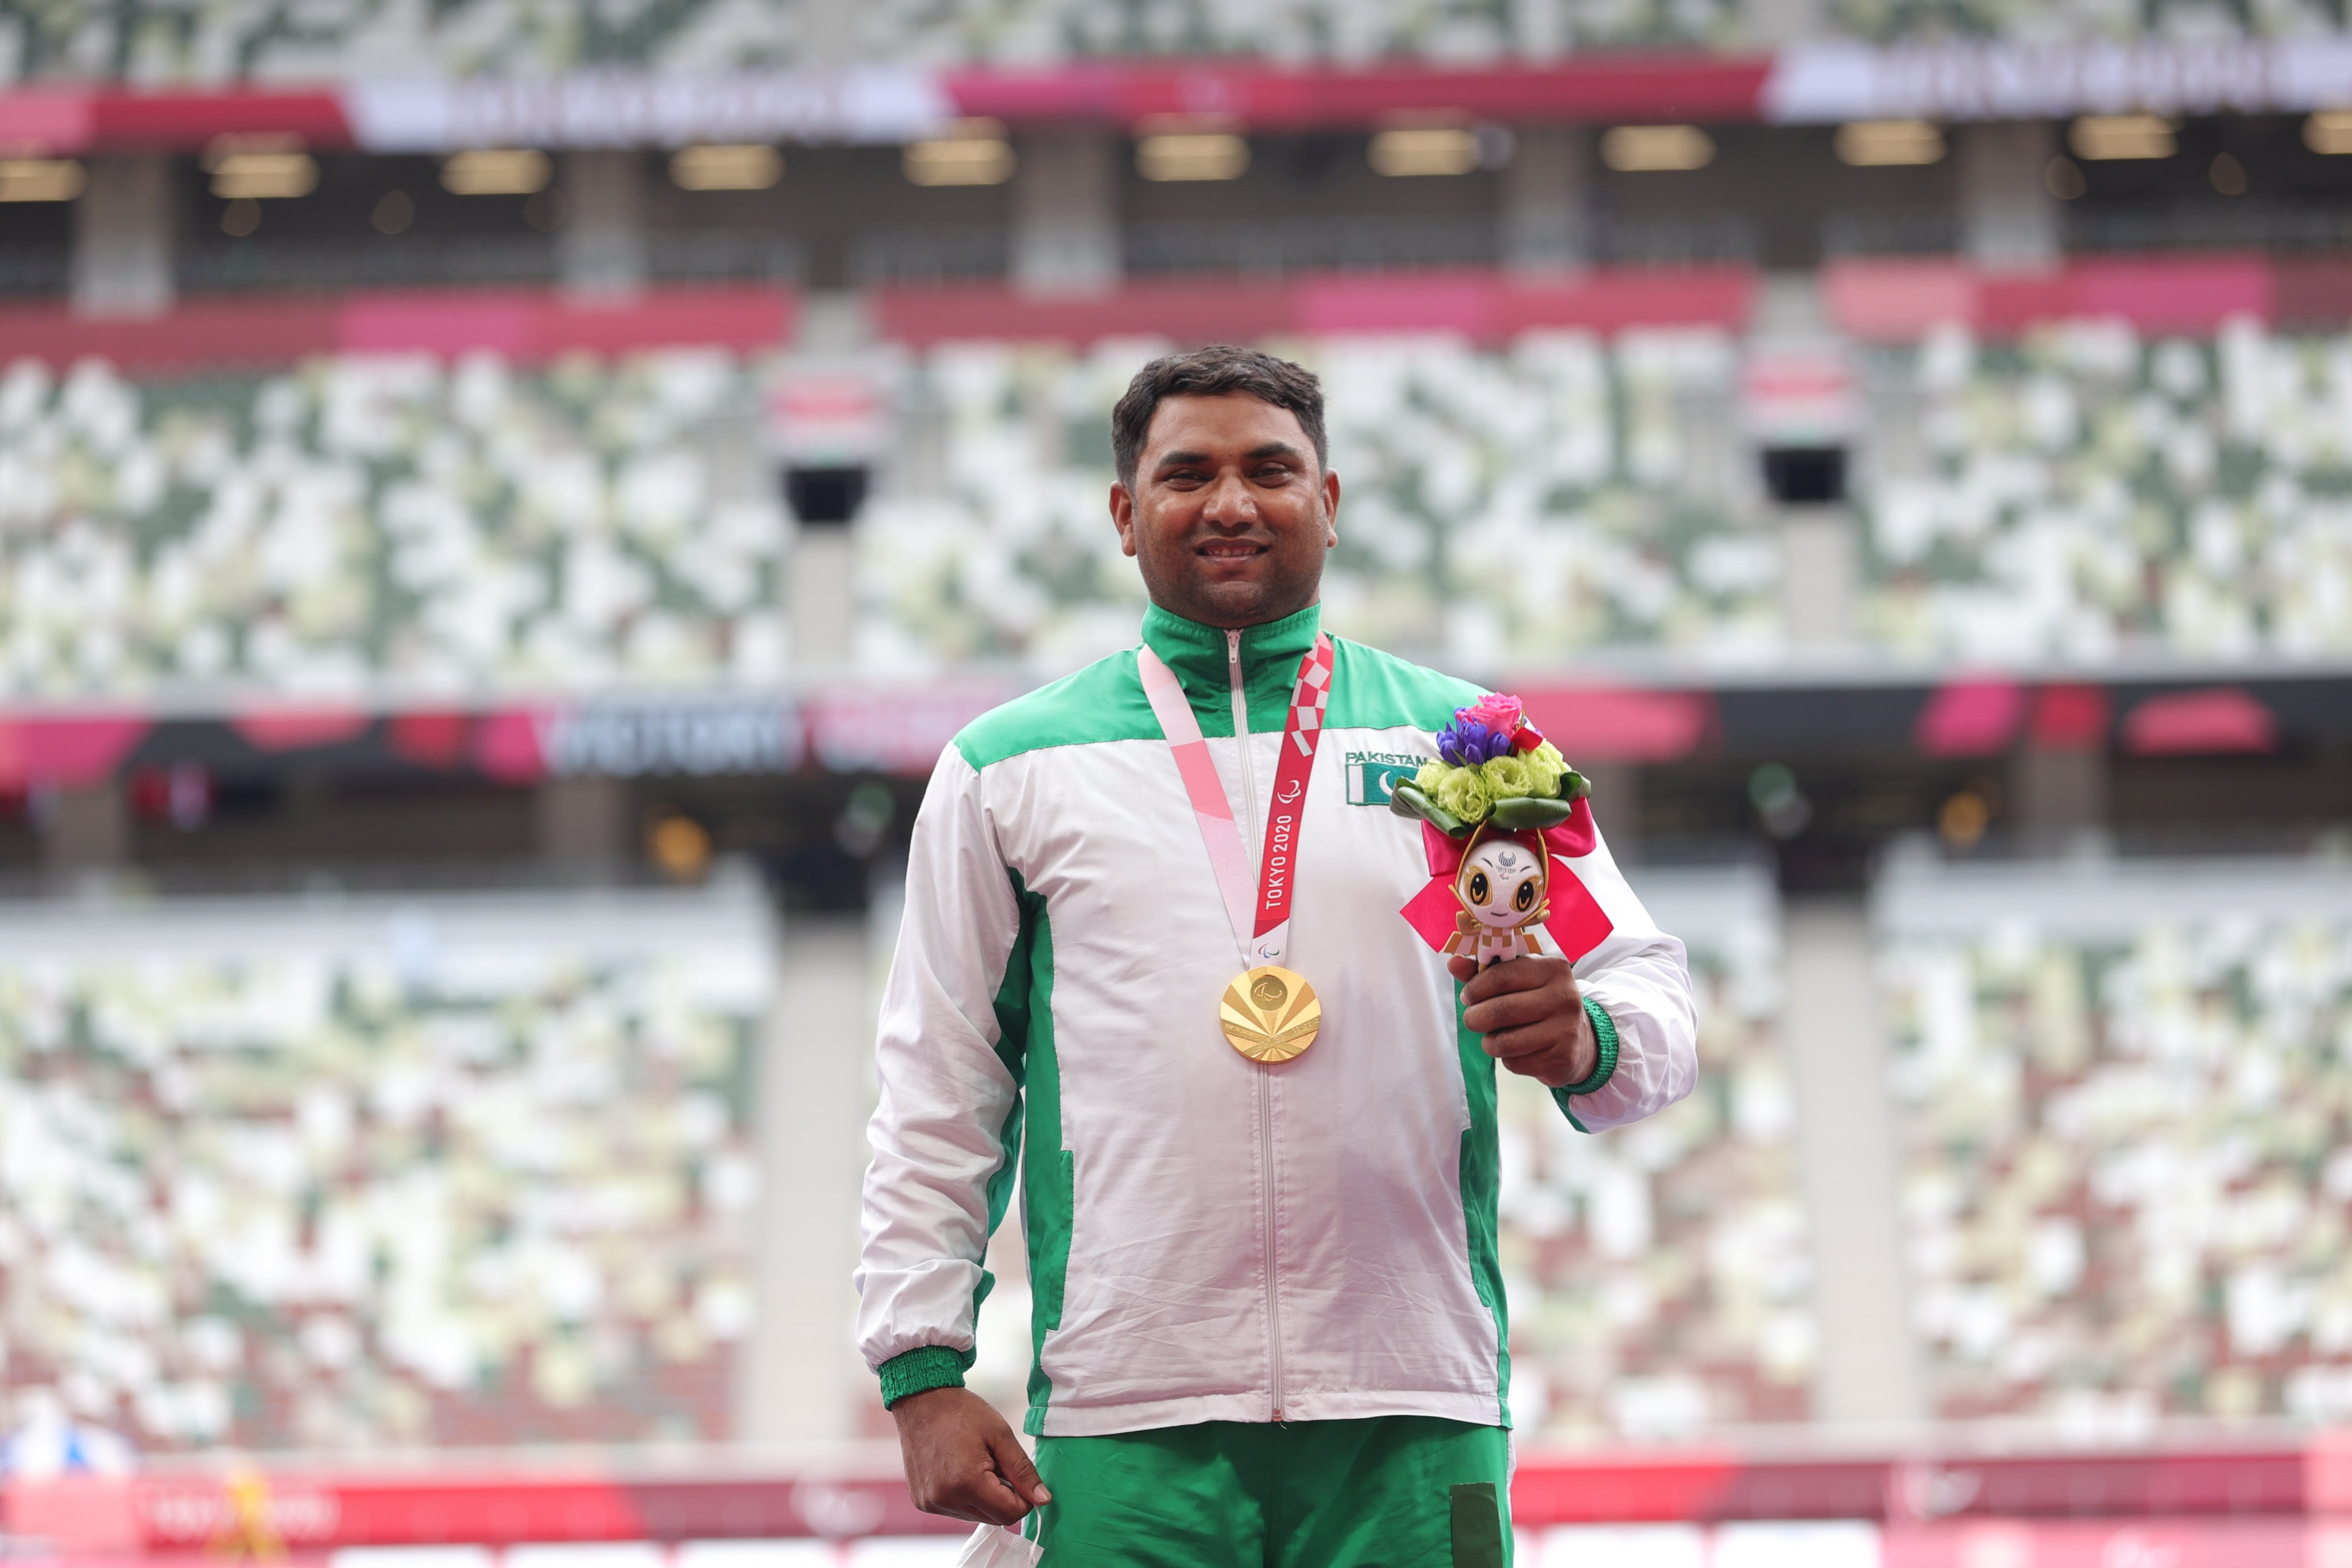 A photo of Pakistani athlete Haider Ali after receiving his gold medal. He is wearing his medal around his neck, holding the Someity mascot and smiling.